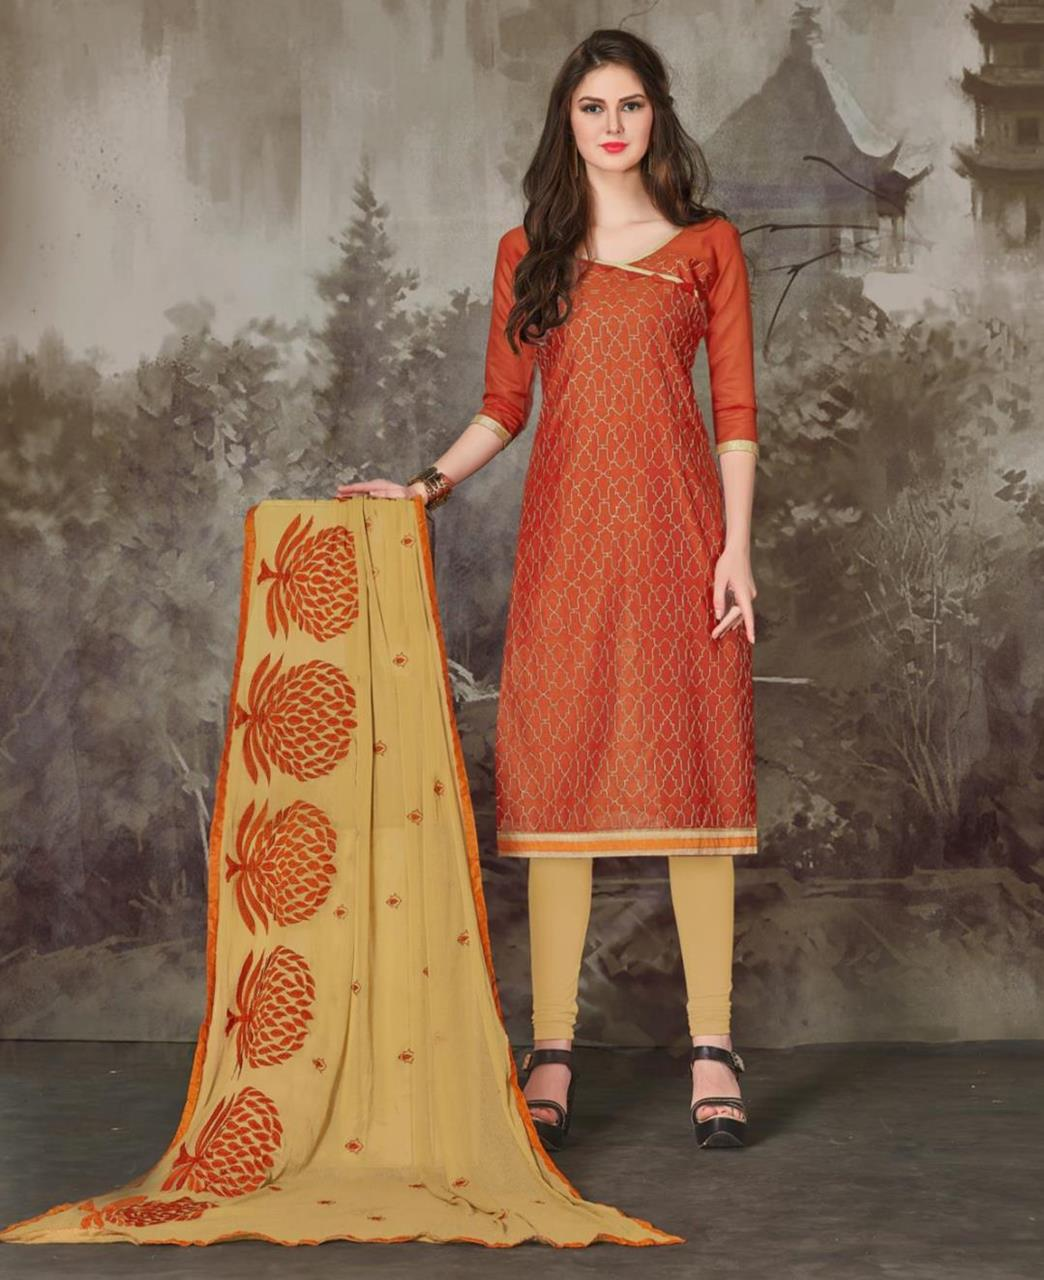 Embroidered Chanderi Orange Straight Cut Salwar Kameez